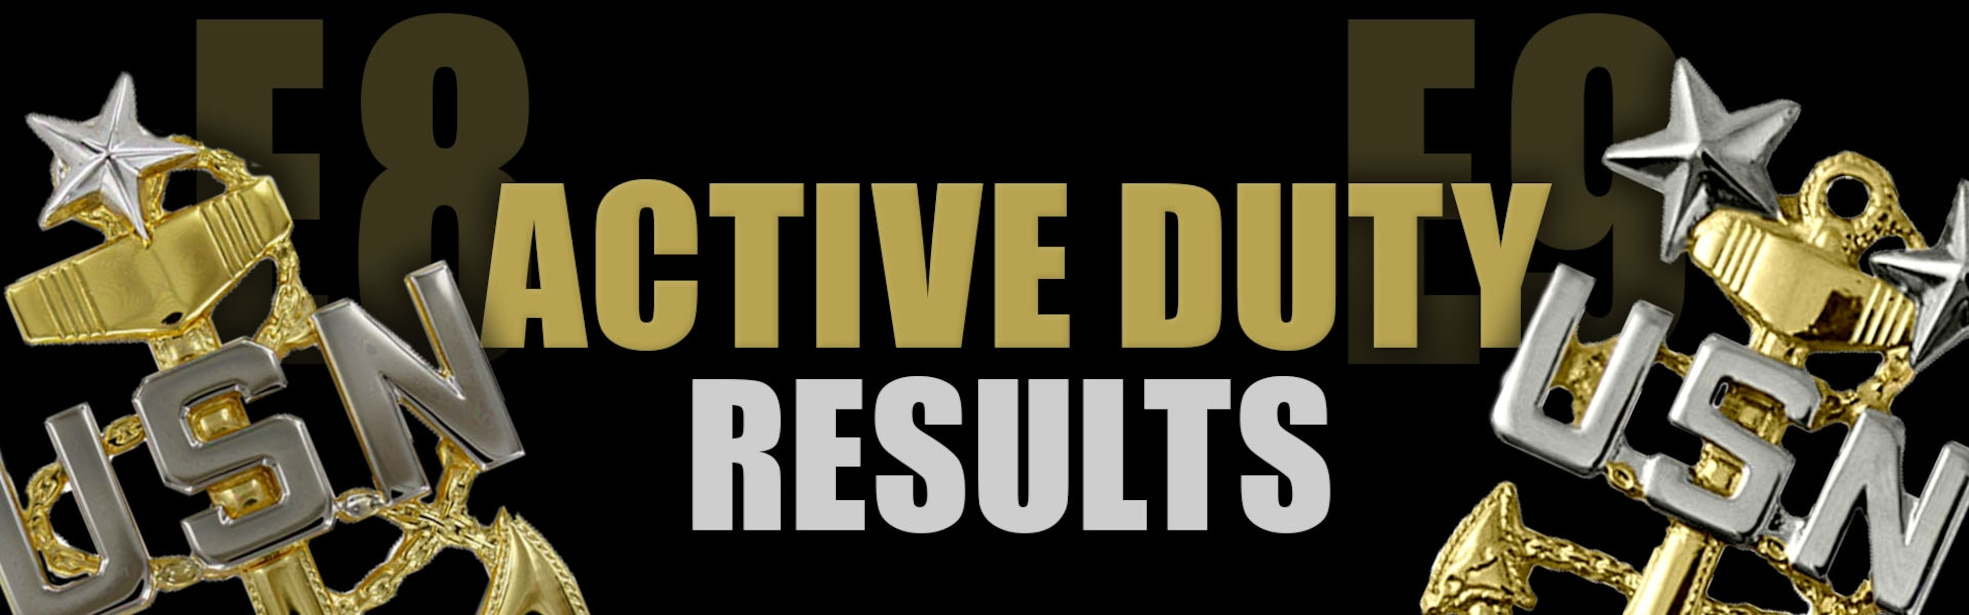 """Two Senior Chief's anchors are placed in the corner of a black background with the words """"Active Duty Results"""" written in between."""